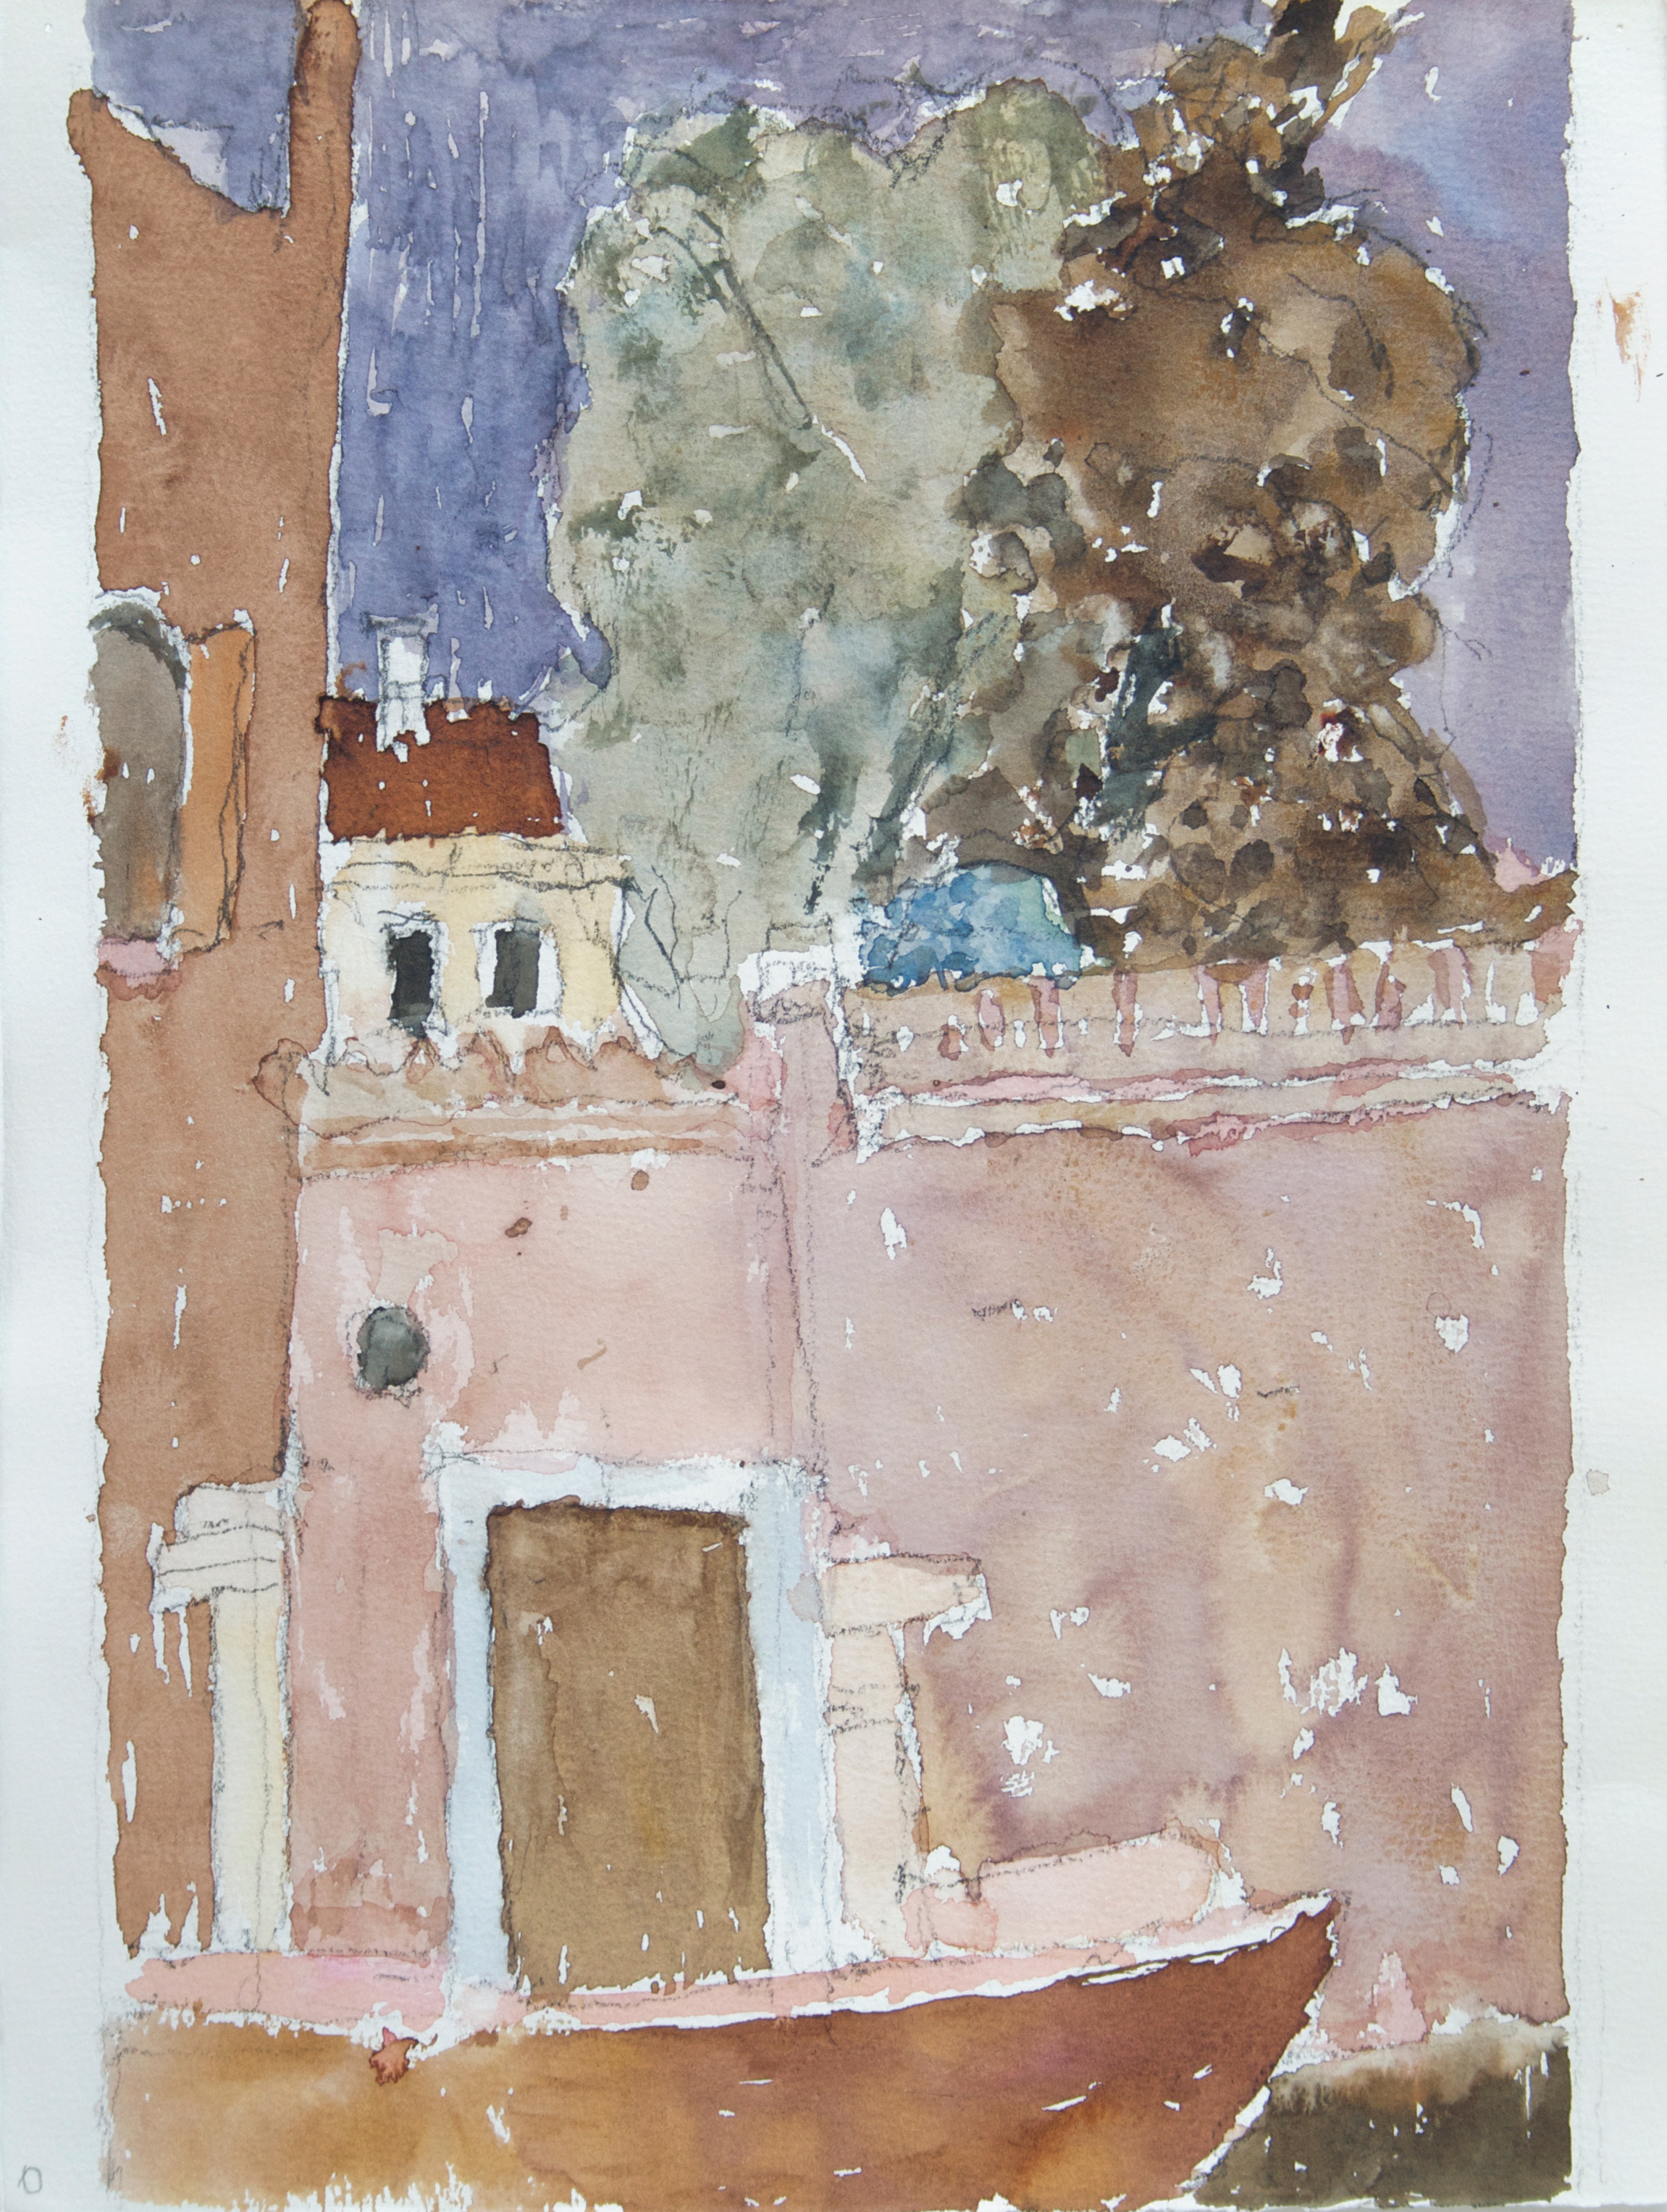 2006_Canal_with_Sandolo_Cannaregio_Venice_watercolour_and_pencil_on_paper_15x11in_WPF246.jpg